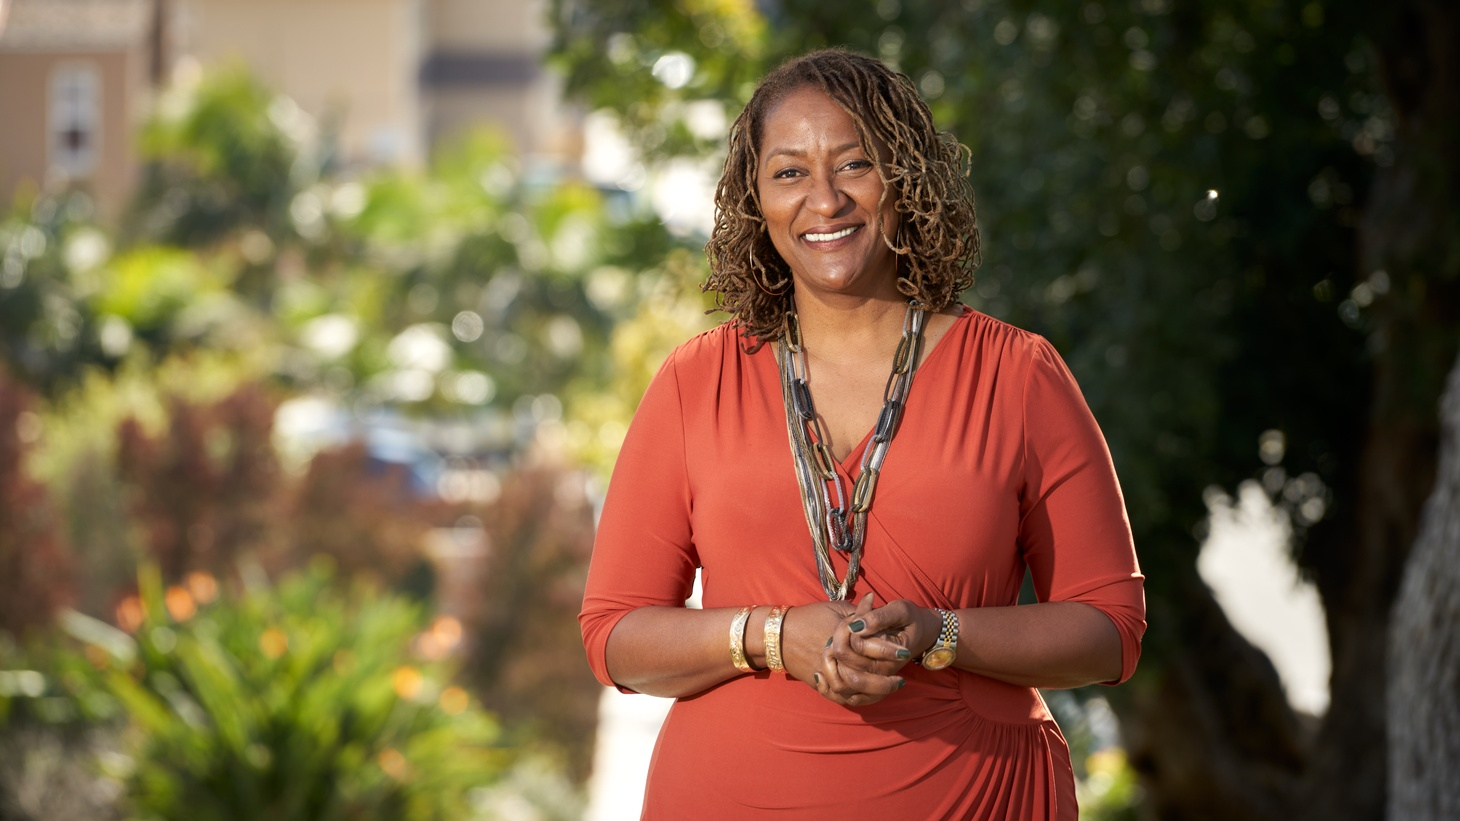 State Senator Holly Mitchell just got voted onto the LA County Board of Supervisors. She's representing District 2, which includes Compton, Culver City, Koreatown, and other neighborhoods.